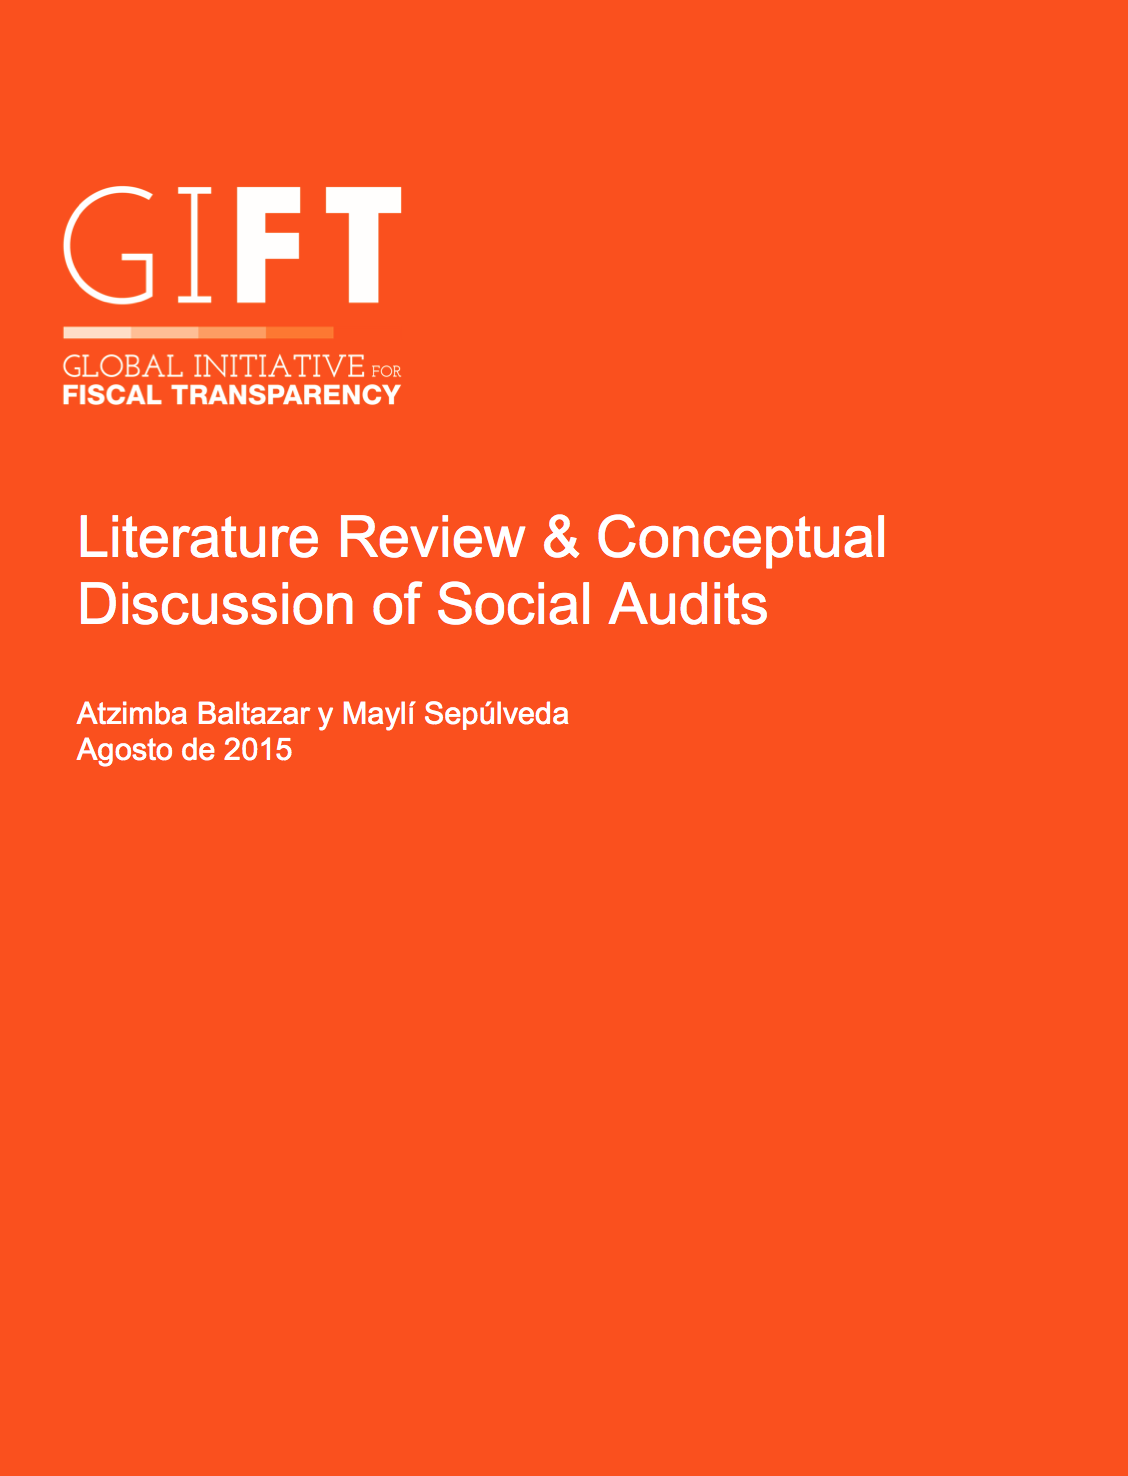 Literature Review & Conceptual Discussion of Social Audits